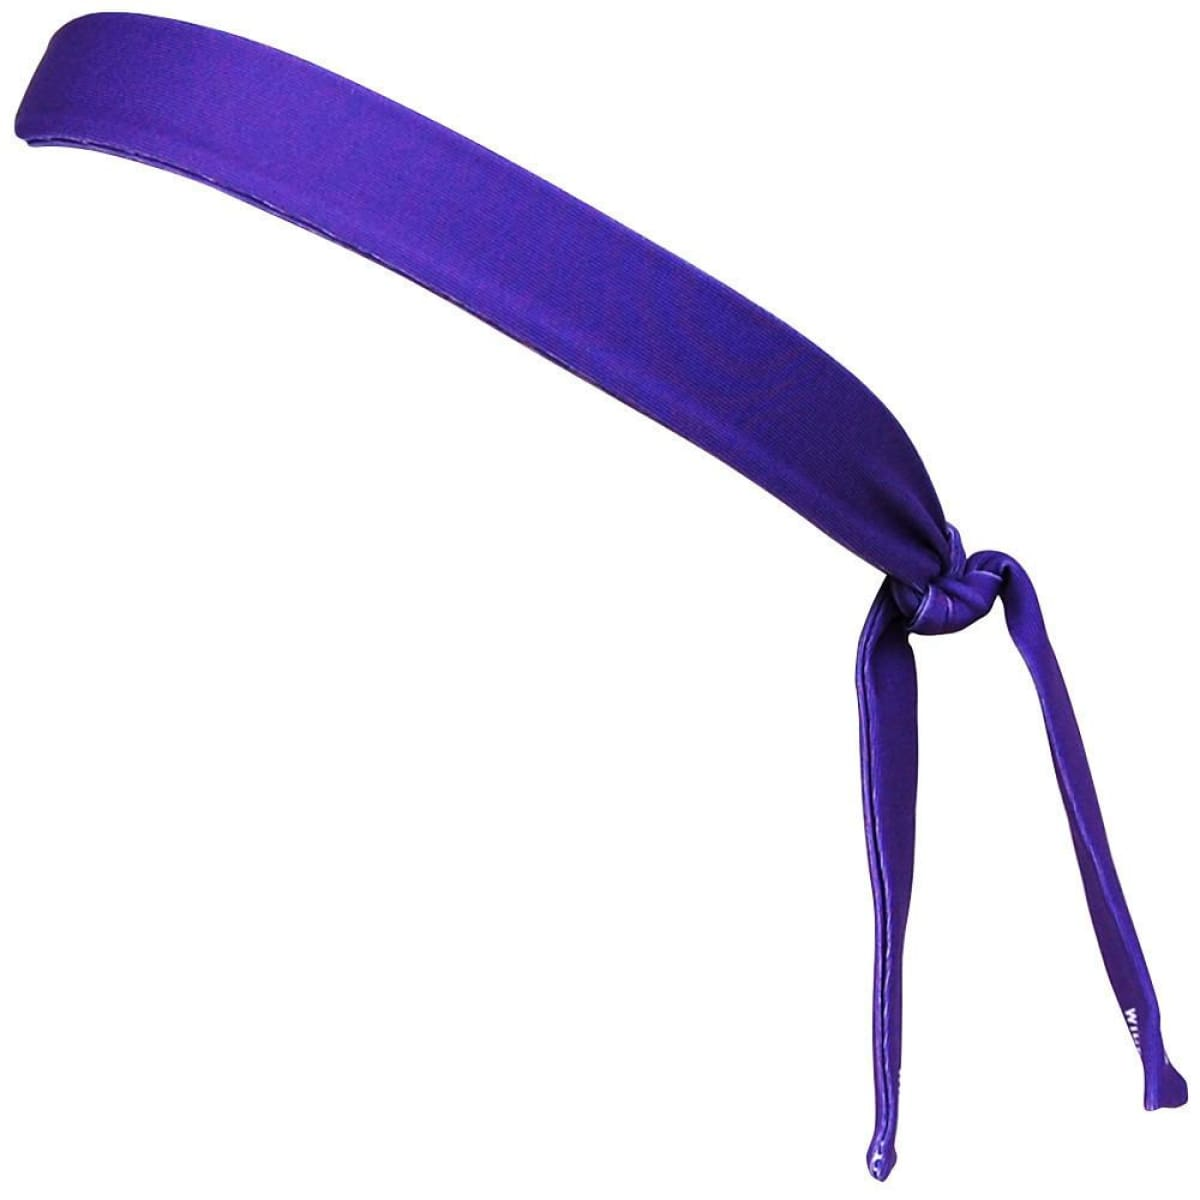 Purple and White Elastic Tie Skinny 1 Headband - Wicked Headbands